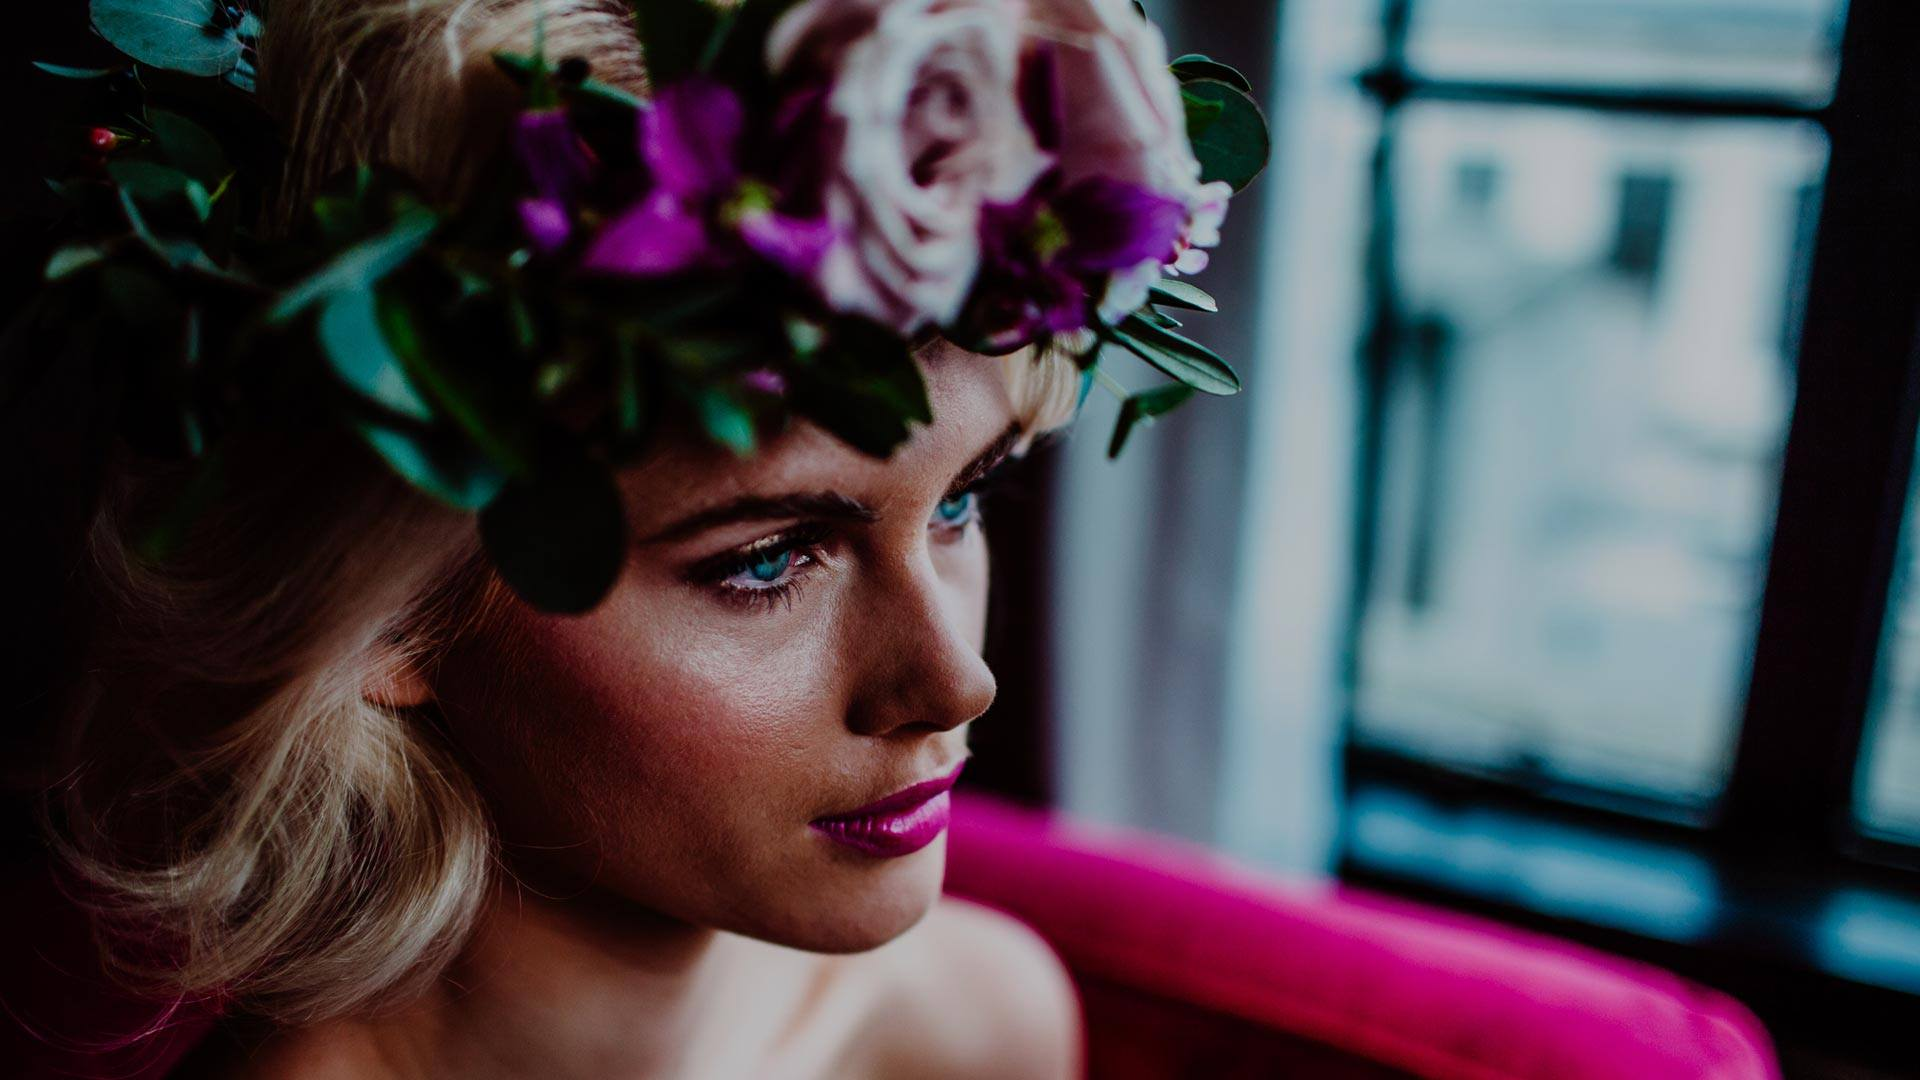 Bridal Makeup by Catherine Cliffe, Makeup Artist at The Gotham Hotel in Manchester